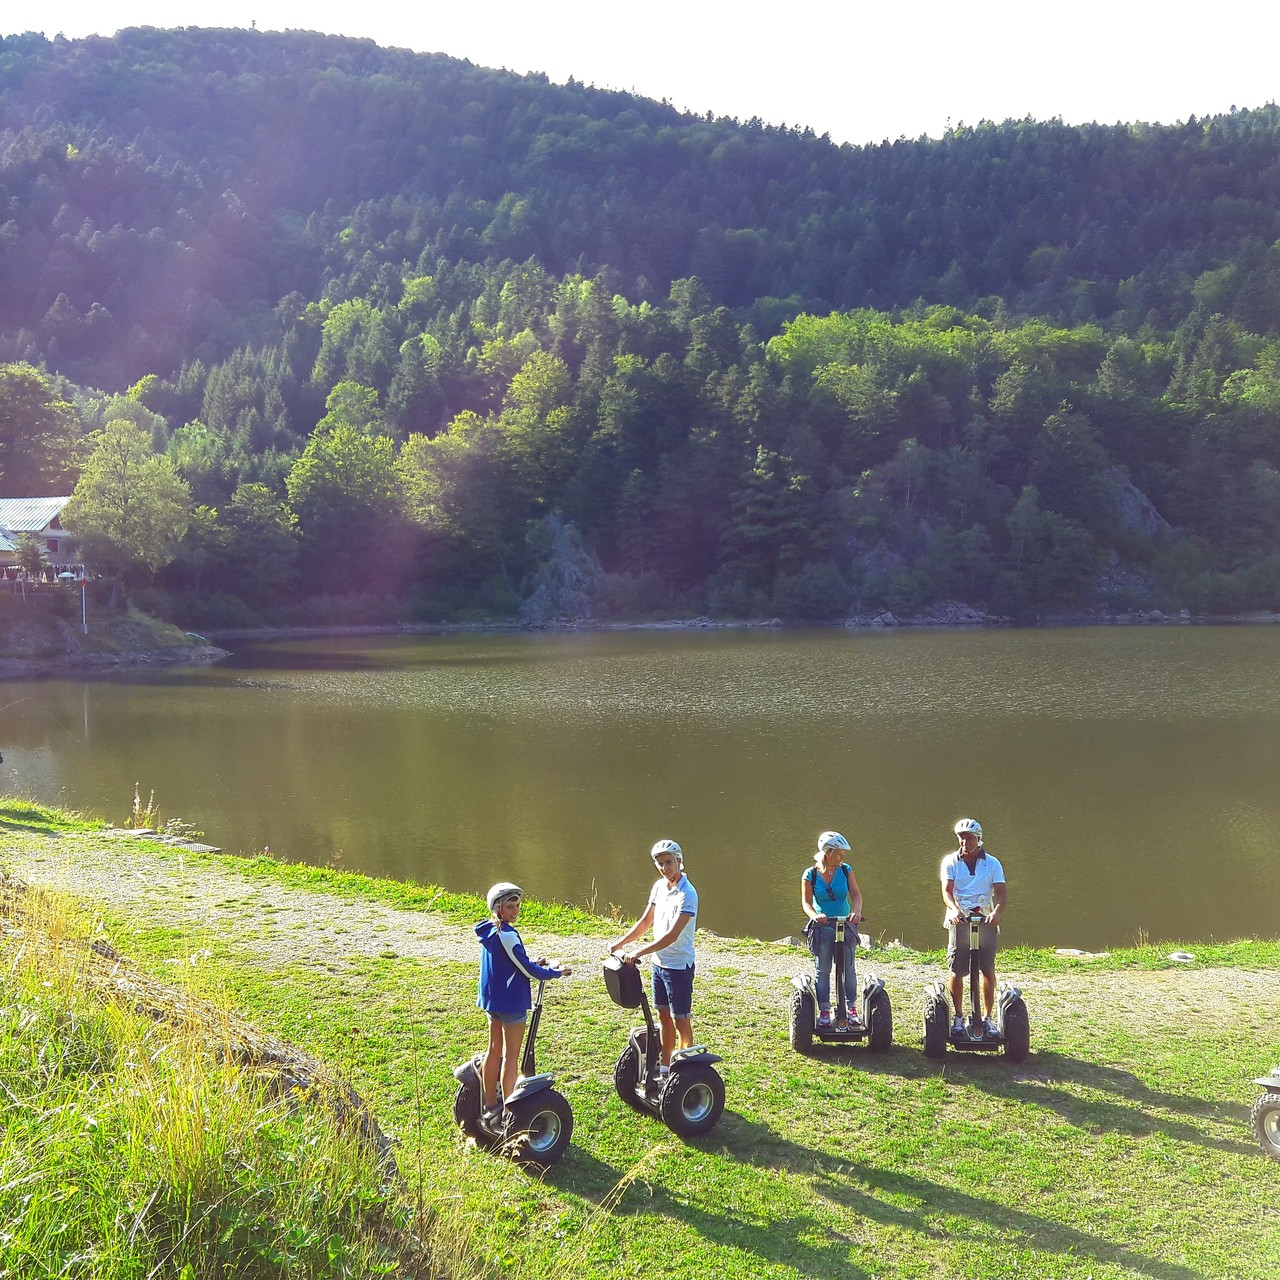 FUN MOVING GYROPODE SEGWAY EN ALSACE - Lac Grand Neuweiher, Vosges